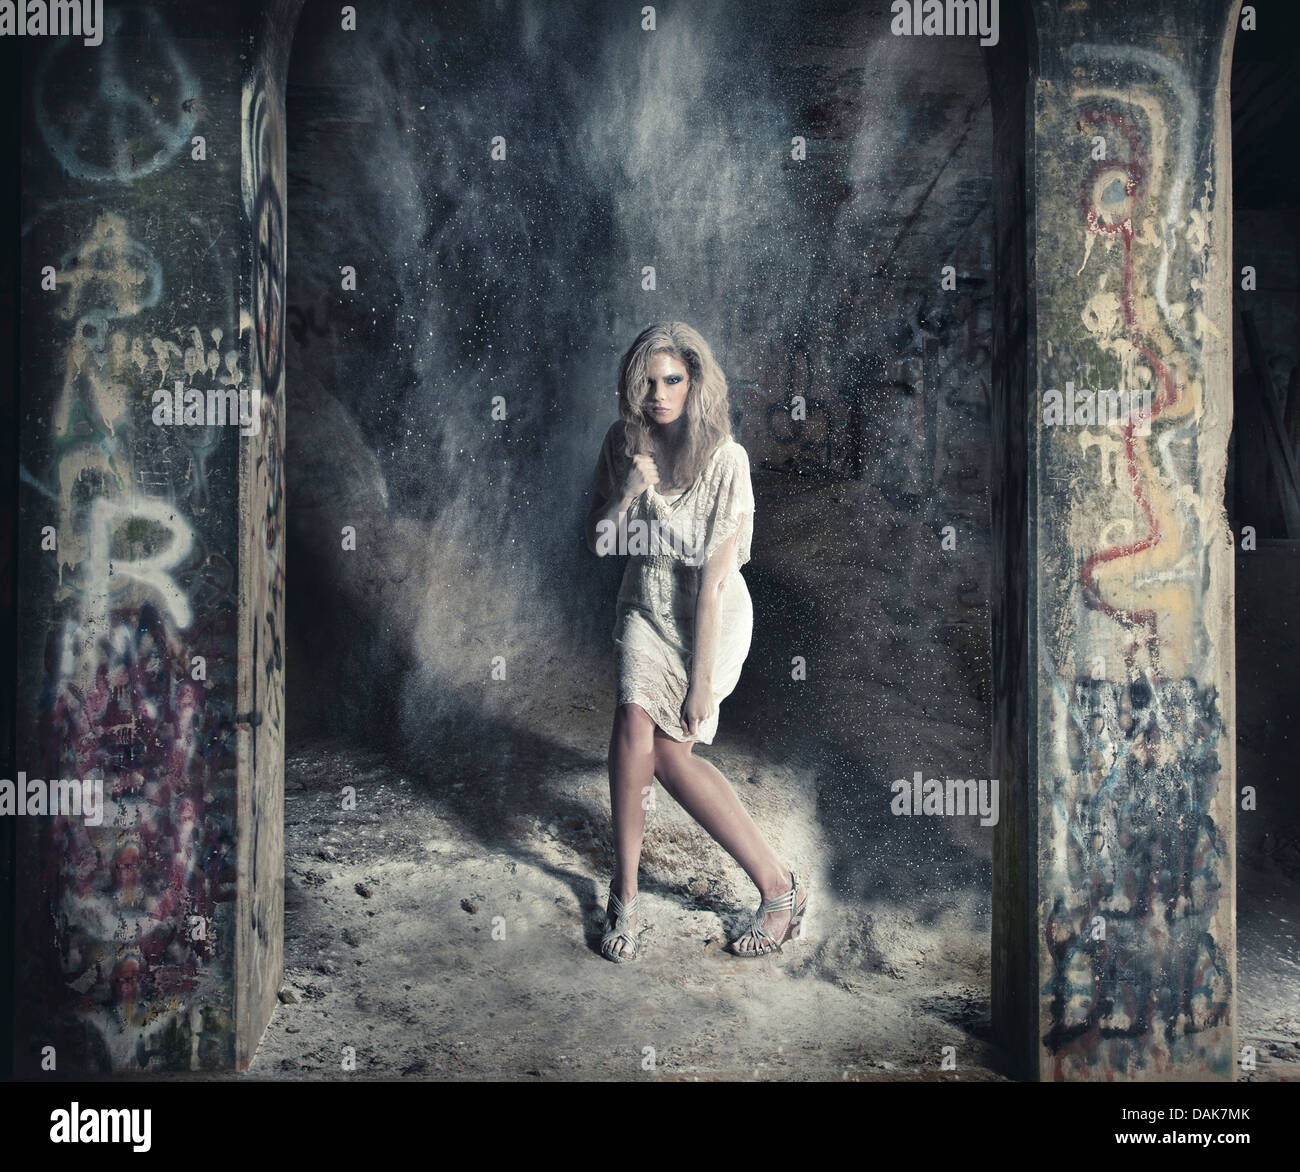 Woman standing between two graffiti covered columns covered in dust - Stock Image